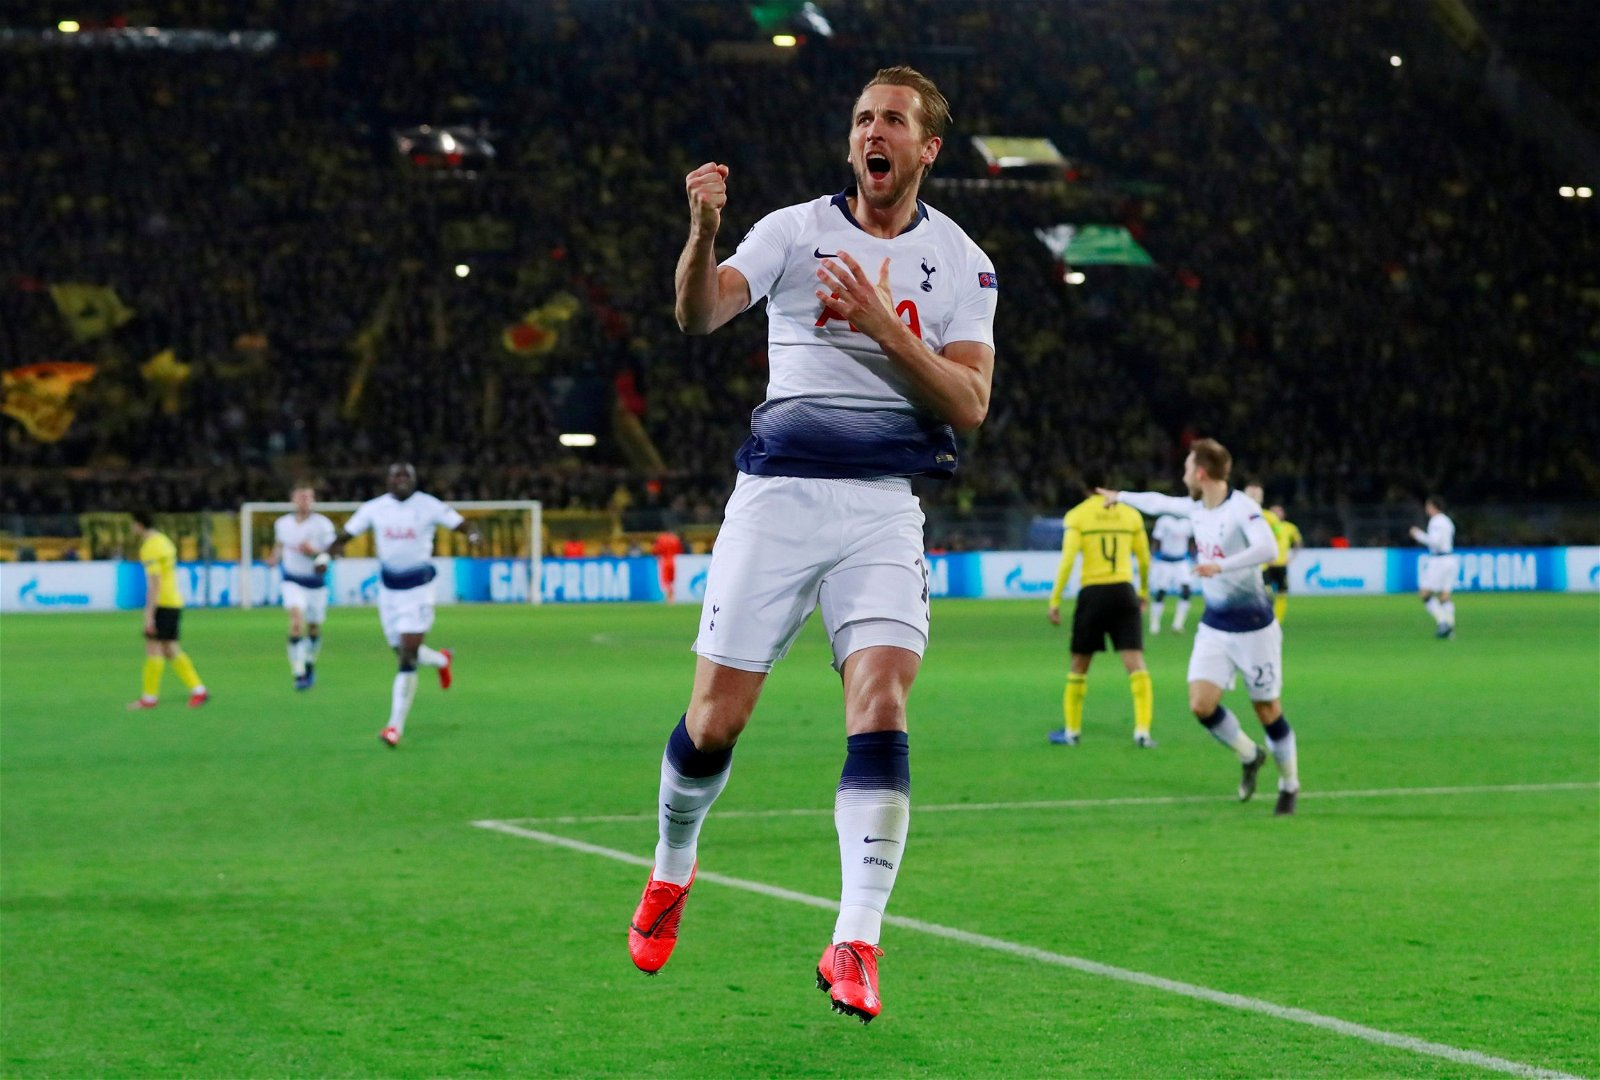 Harry Kane celebrates scoring for Tottenham against Borussia Dortmund - New dynamic: Major Spurs decision for 2019/20 season is staring Pochettino in the face - opinion